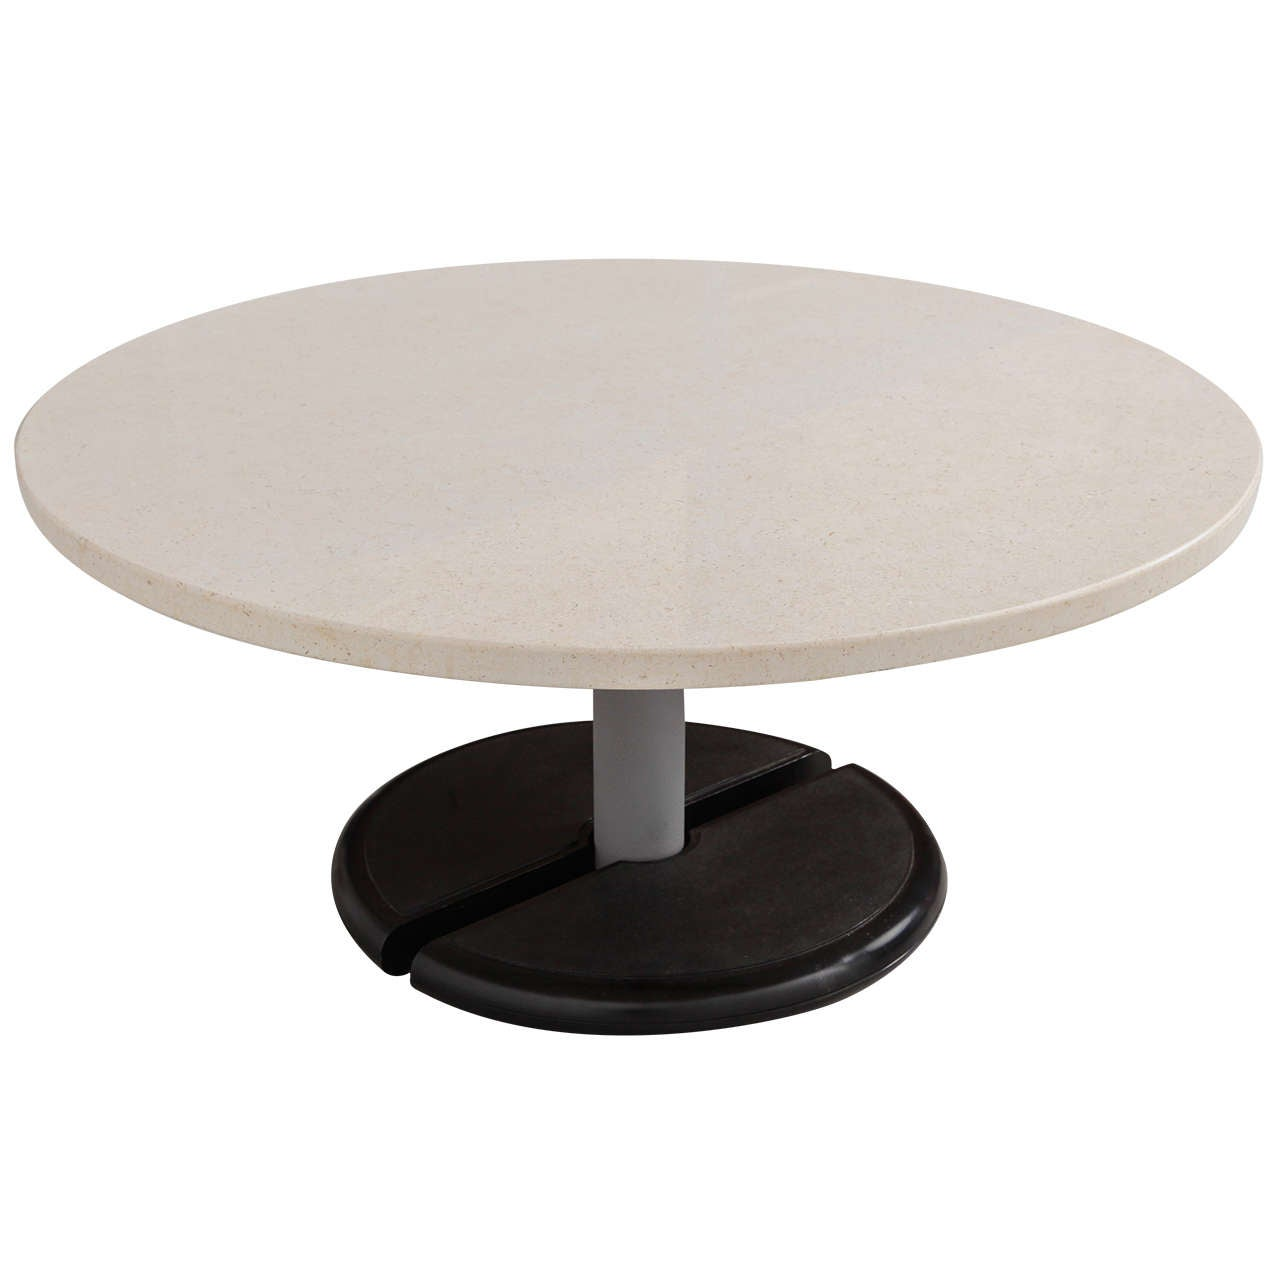 Round marble topped coffee table at 1stdibs Round marble coffee tables